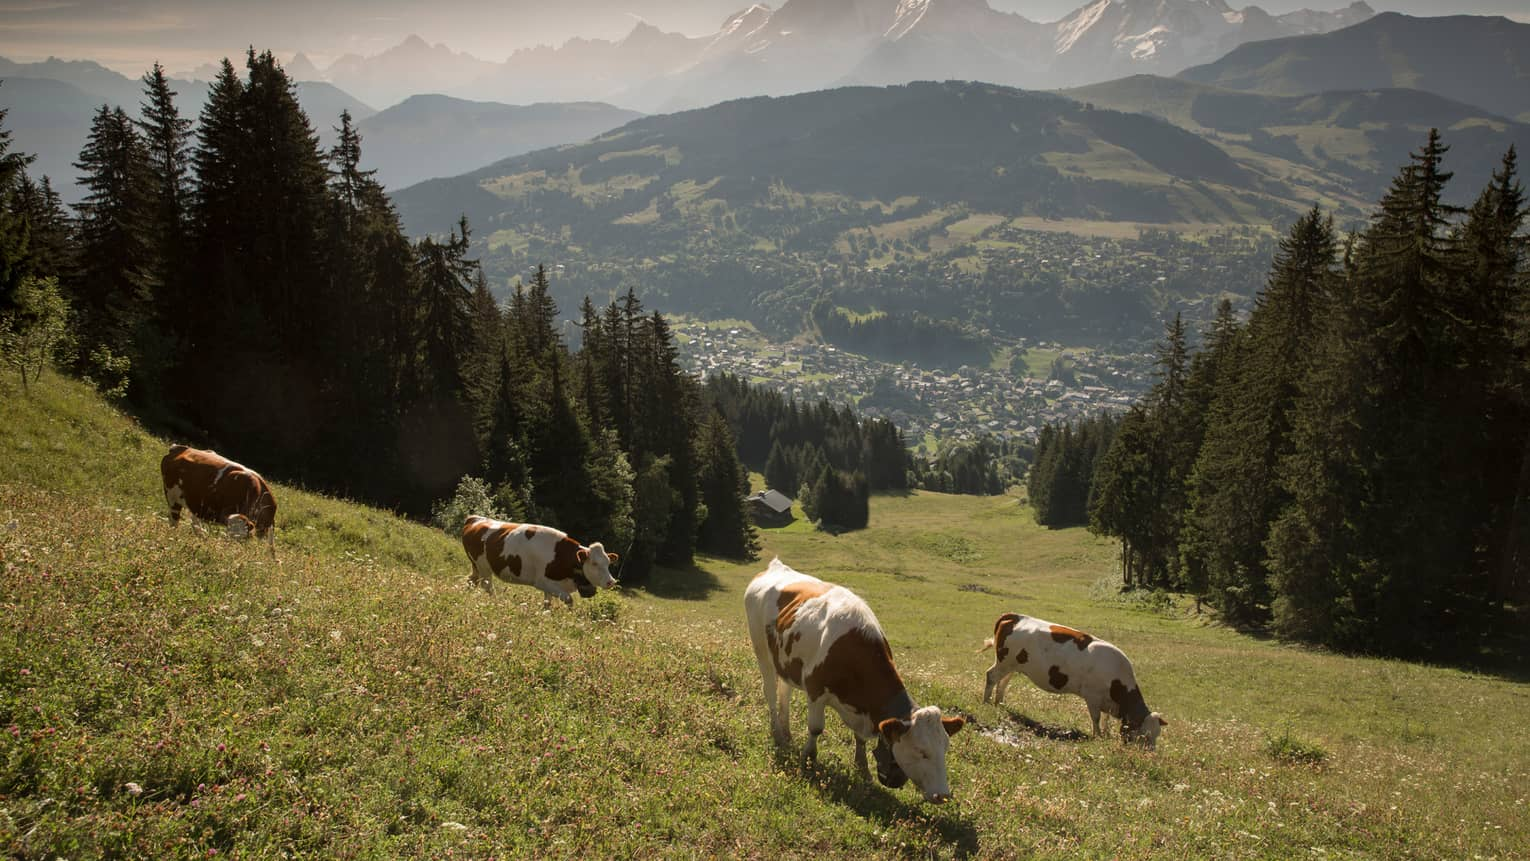 Cows graze in green field high up in mountains